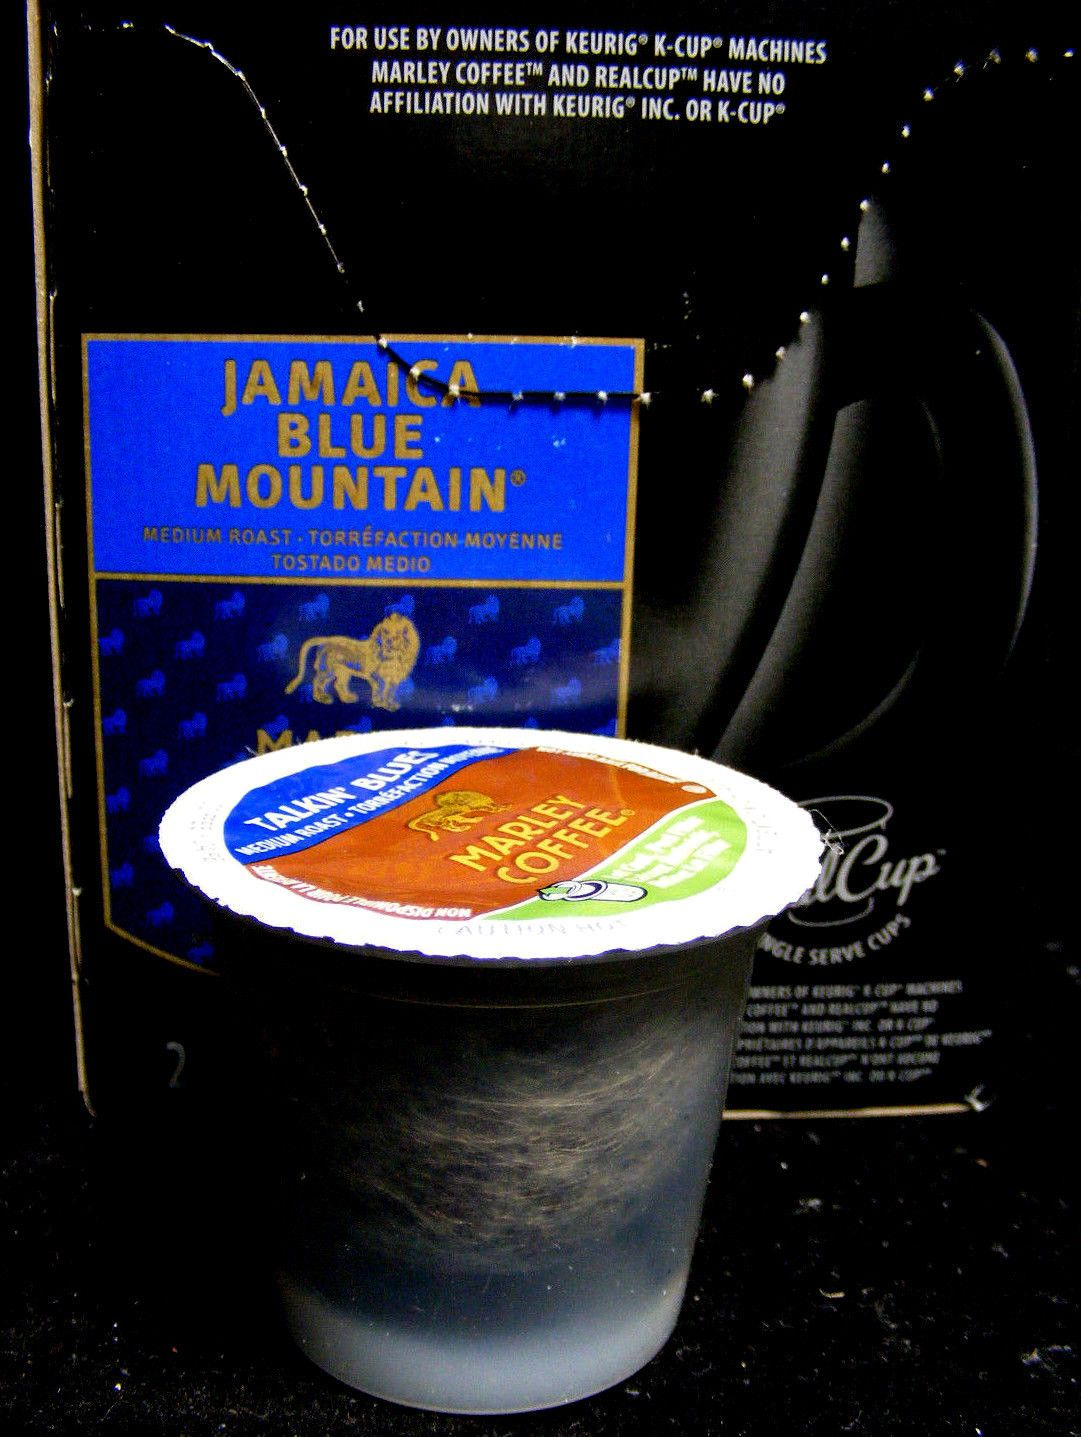 Marley Coffee Jamaica Blue Mountain Talkin Blues Kcup 24 Cups Single